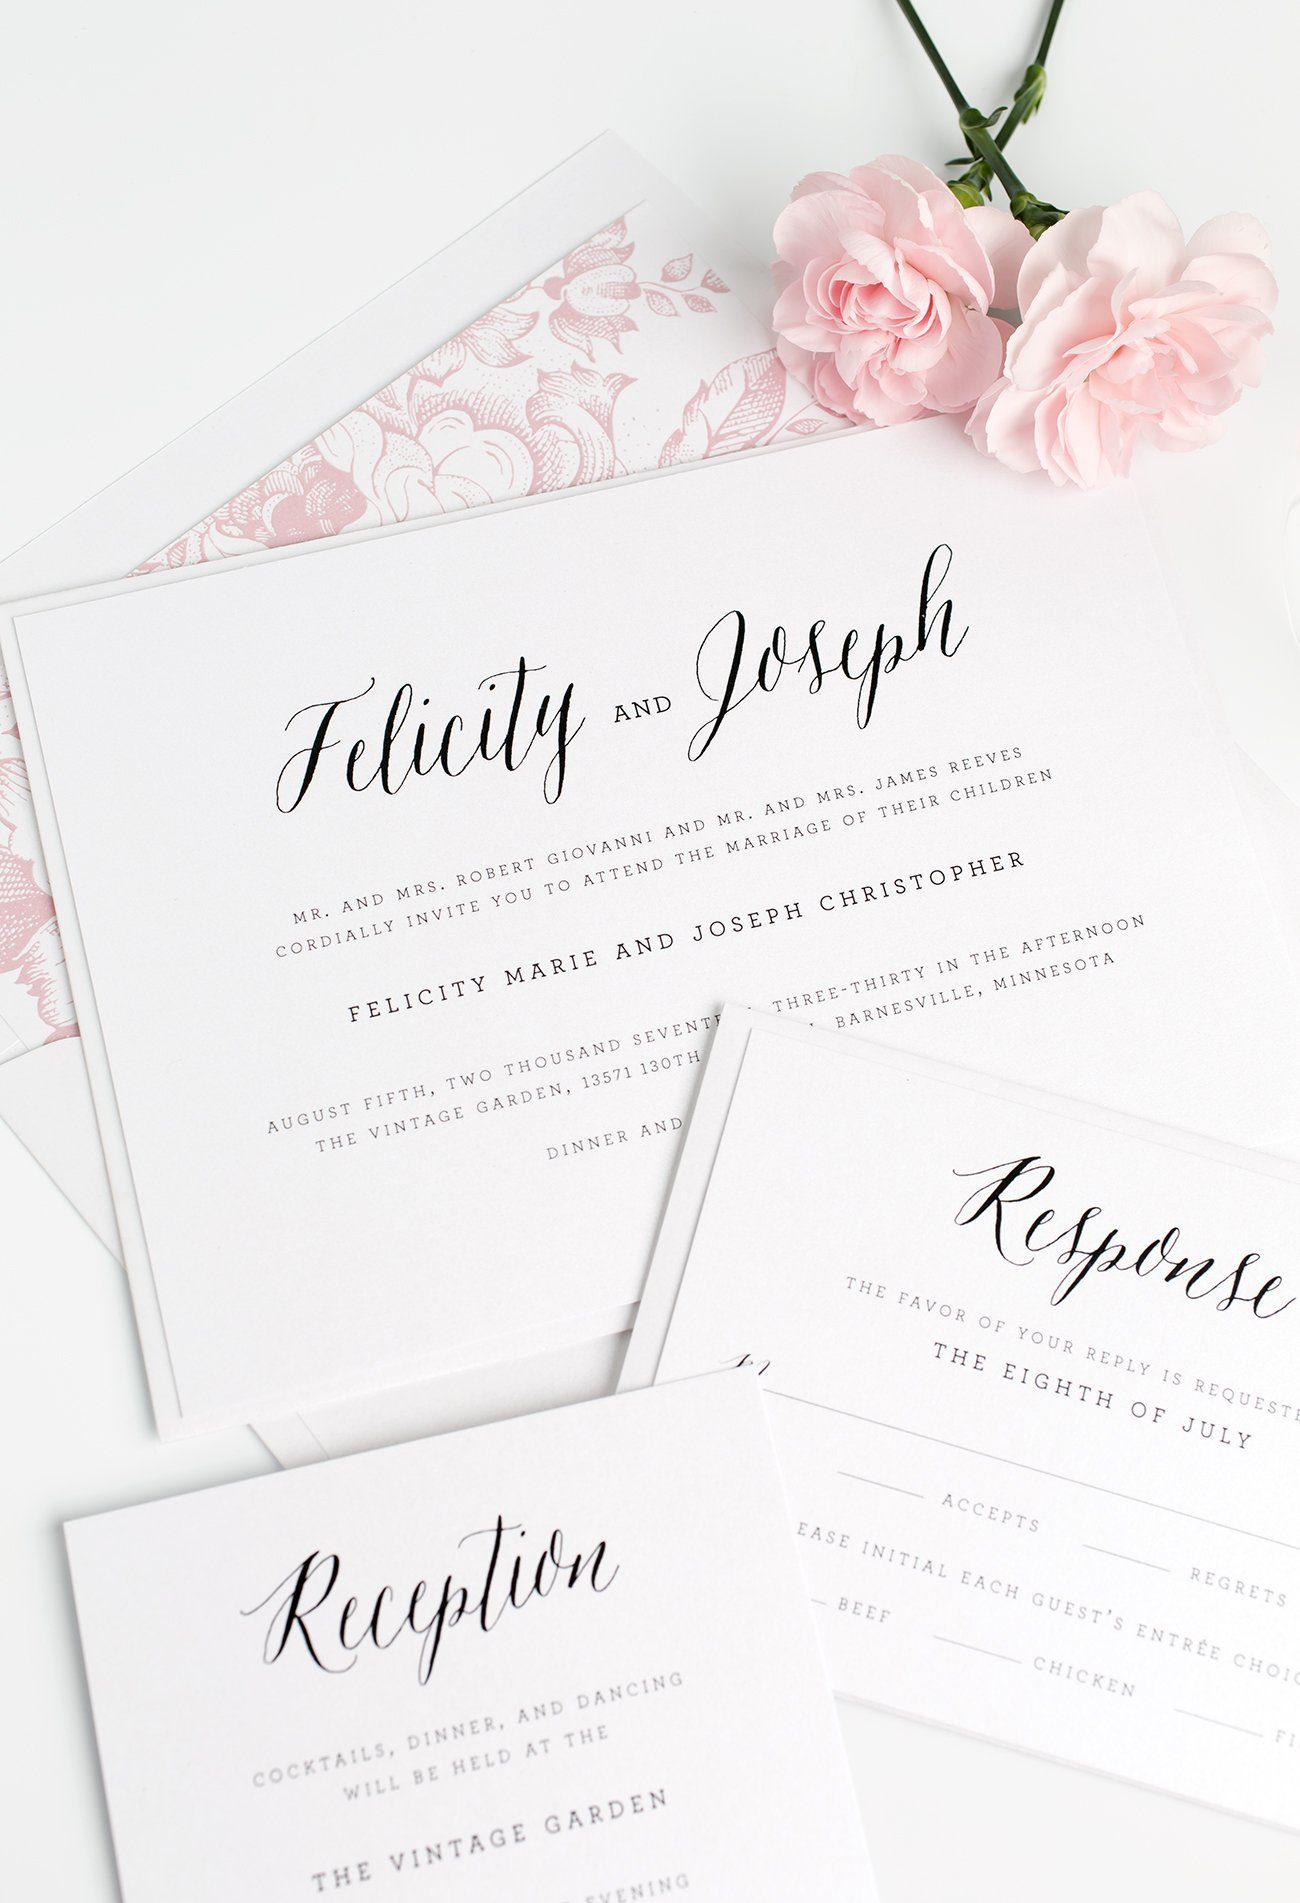 Rustic Romantic Wedding Invitations with a Petal Pink Floral Envelope Liner